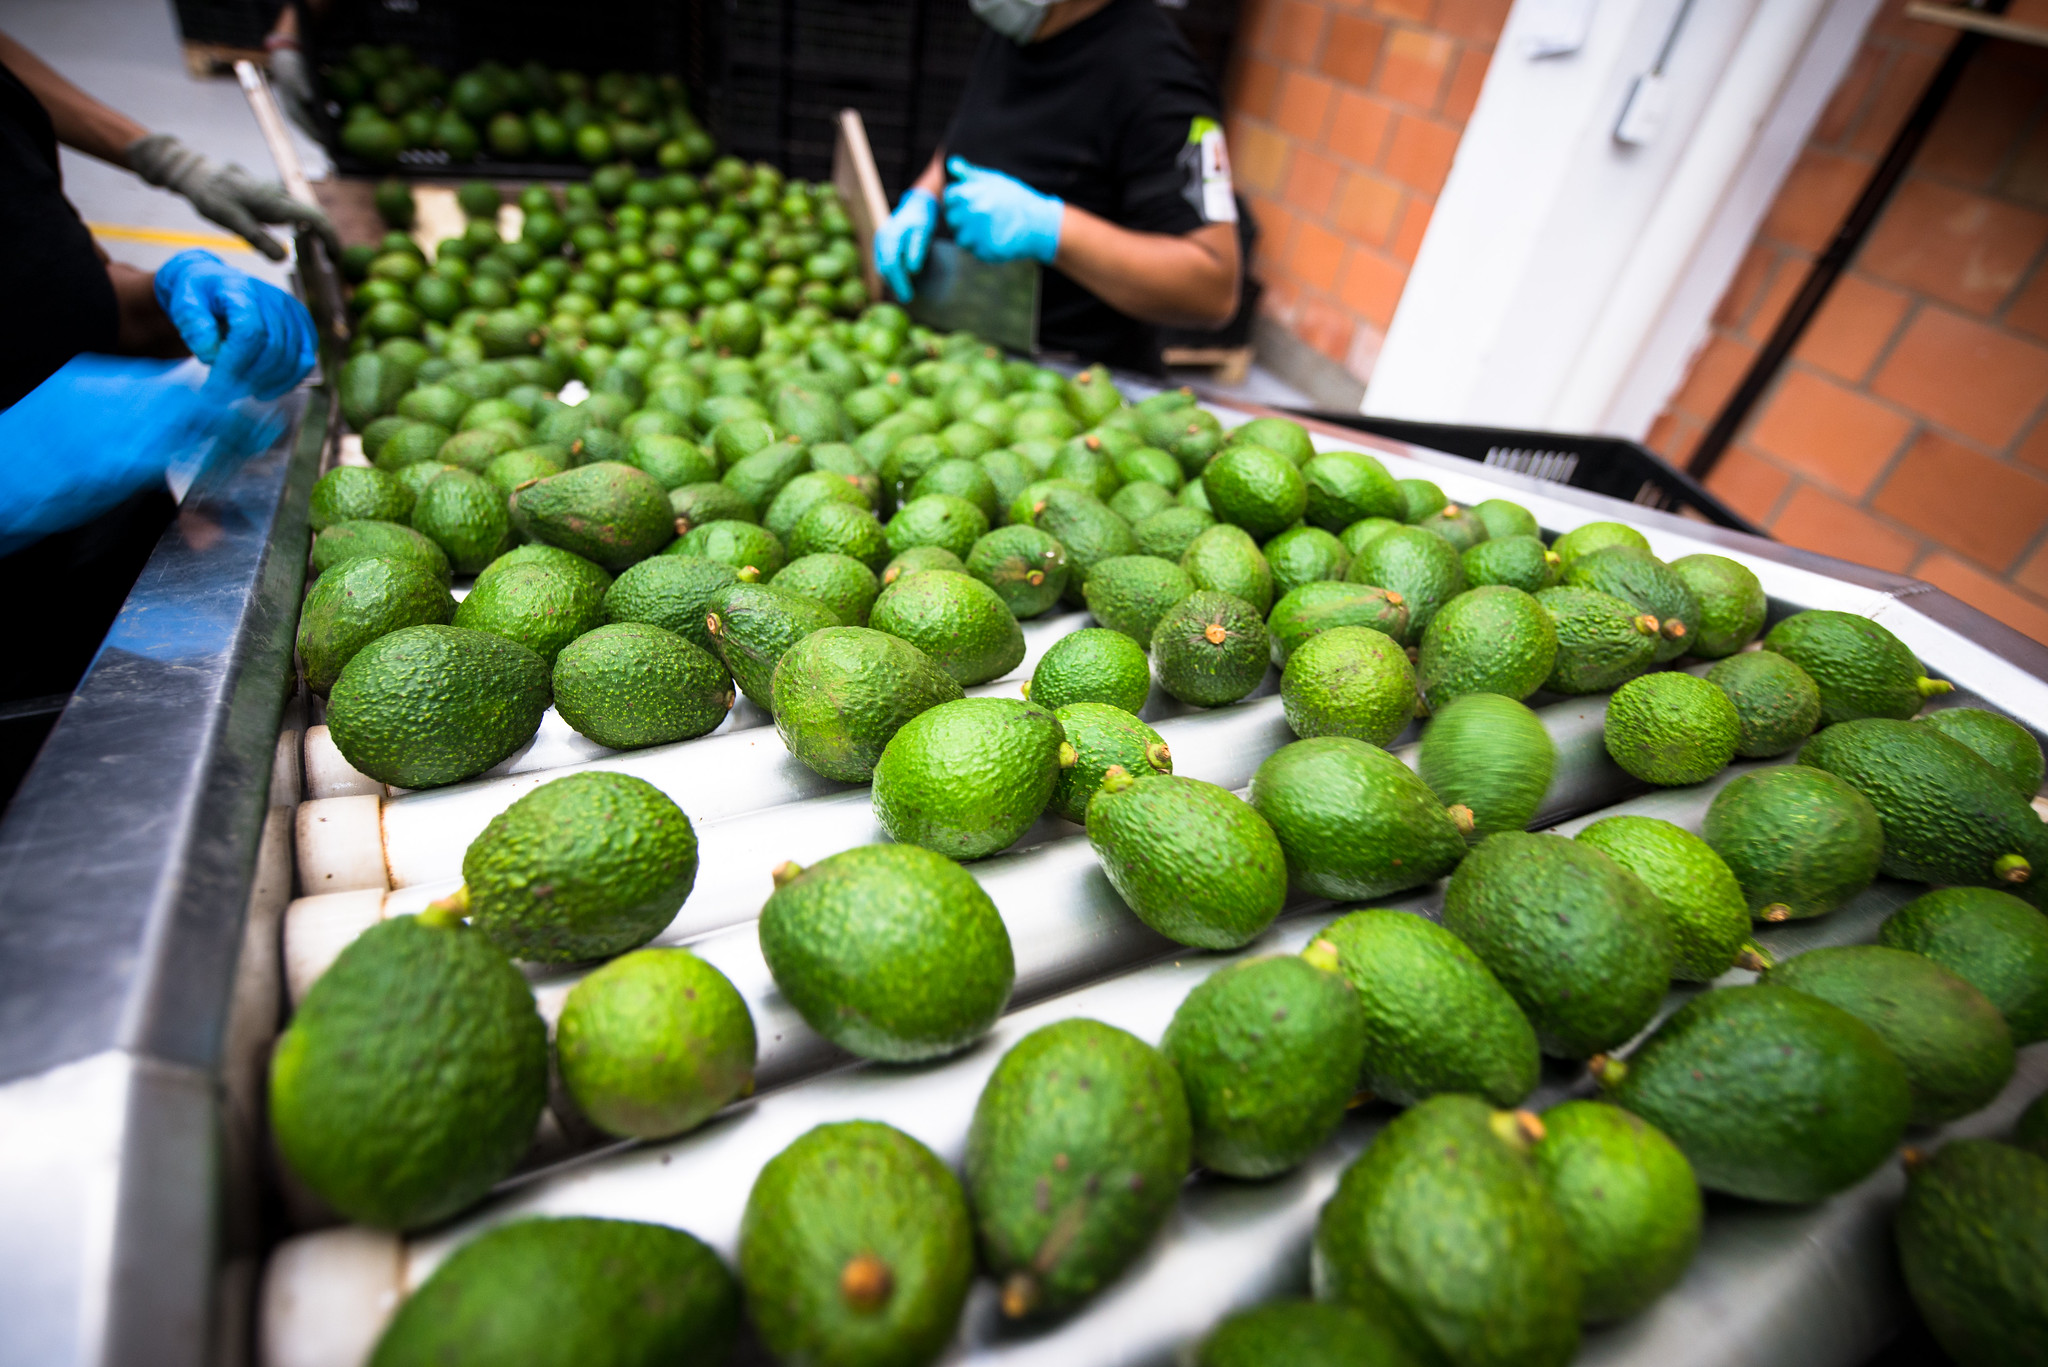 Colombia promotes environmental and social sustainability certifications